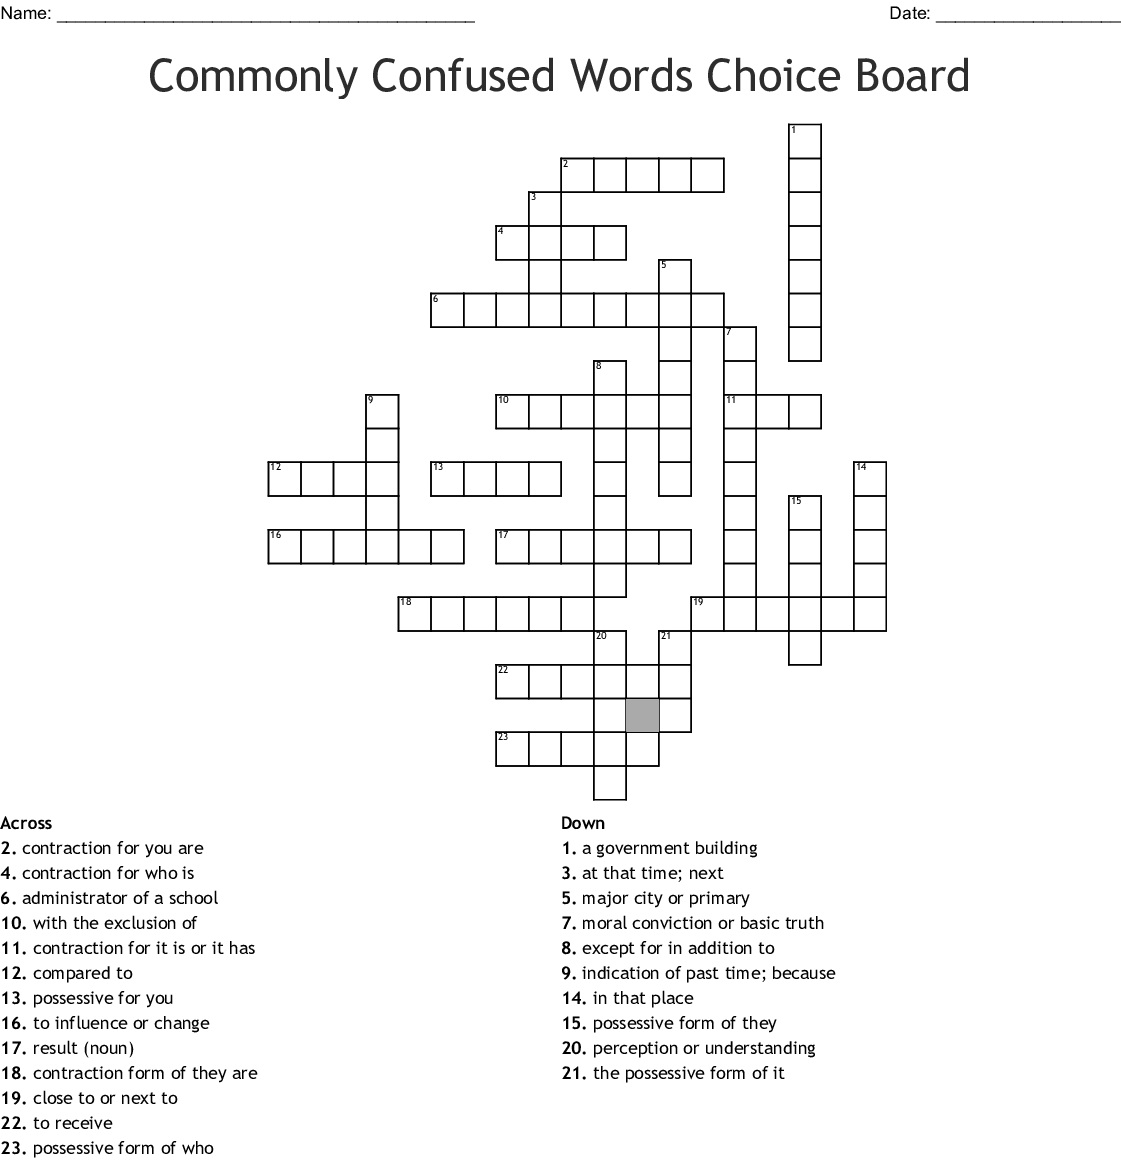 Commonly Confused Words Choice Board Crossword